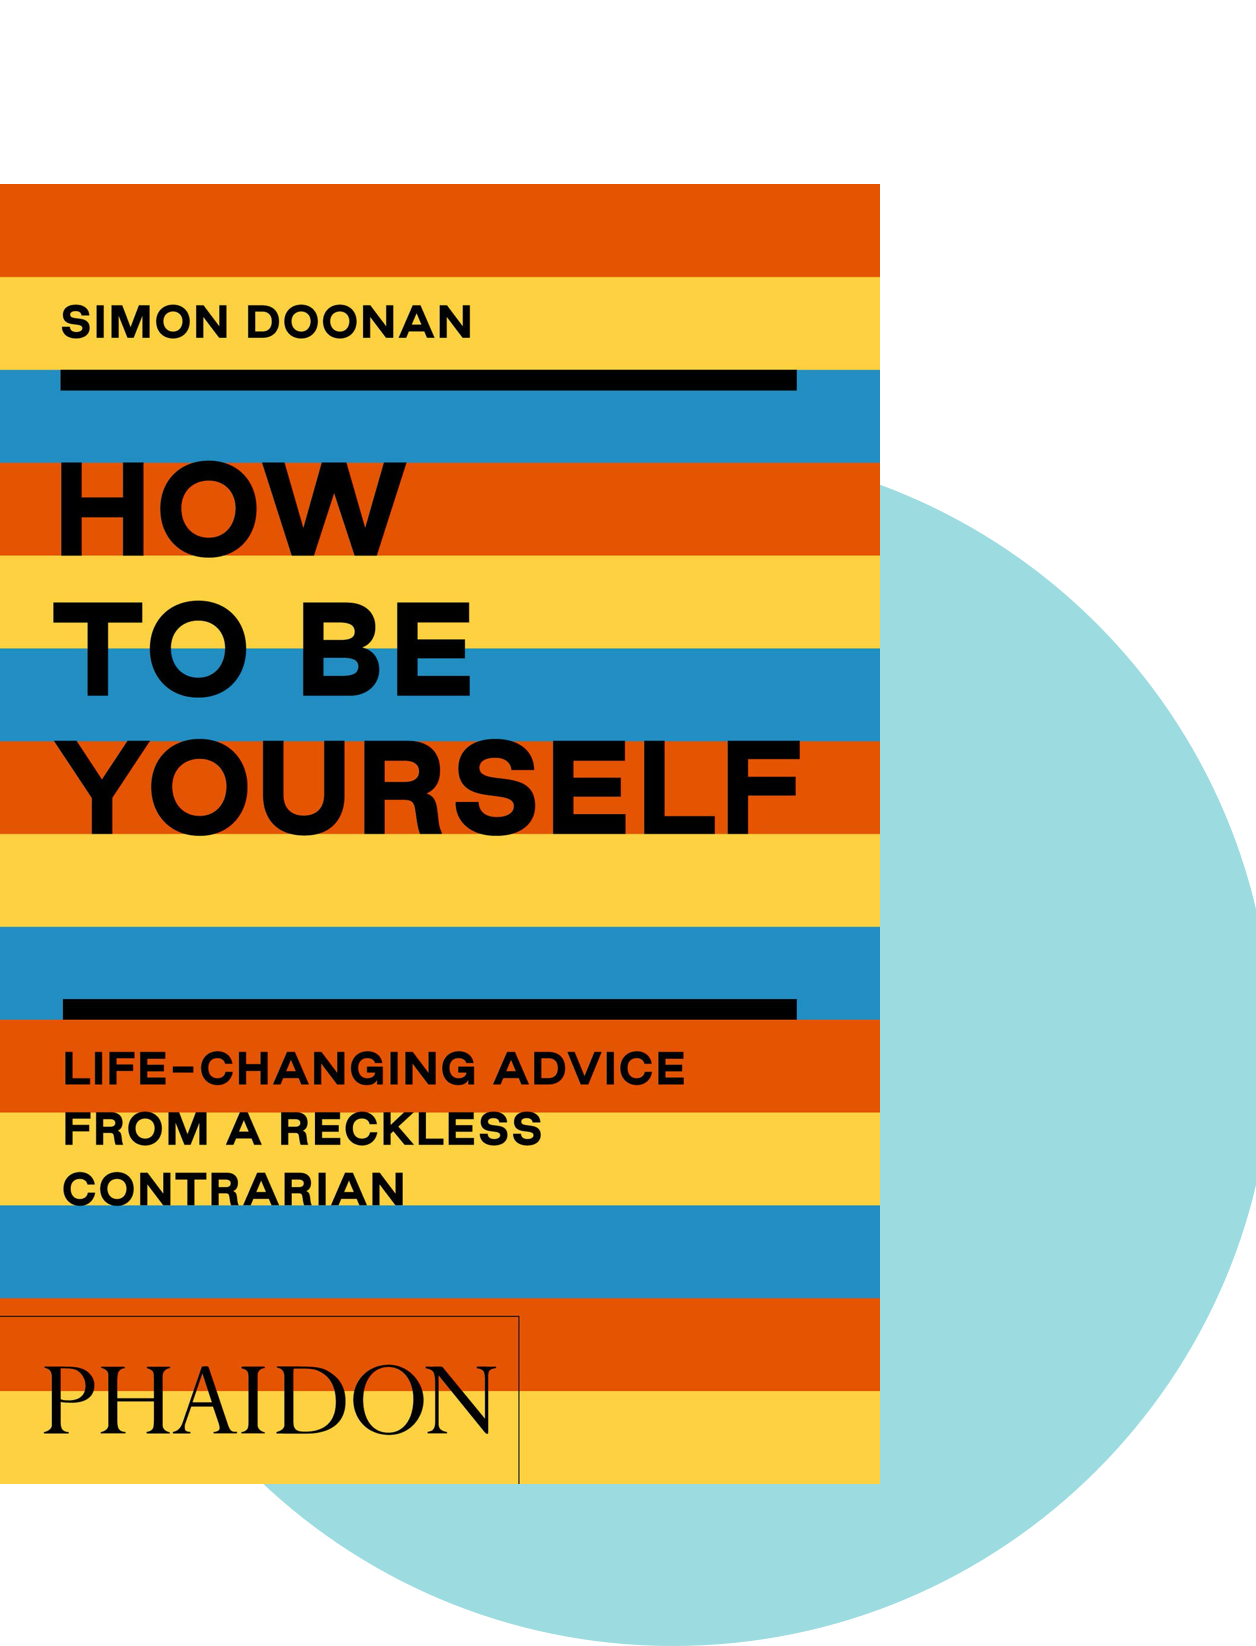 How To Be Yourself by Simon Doonan